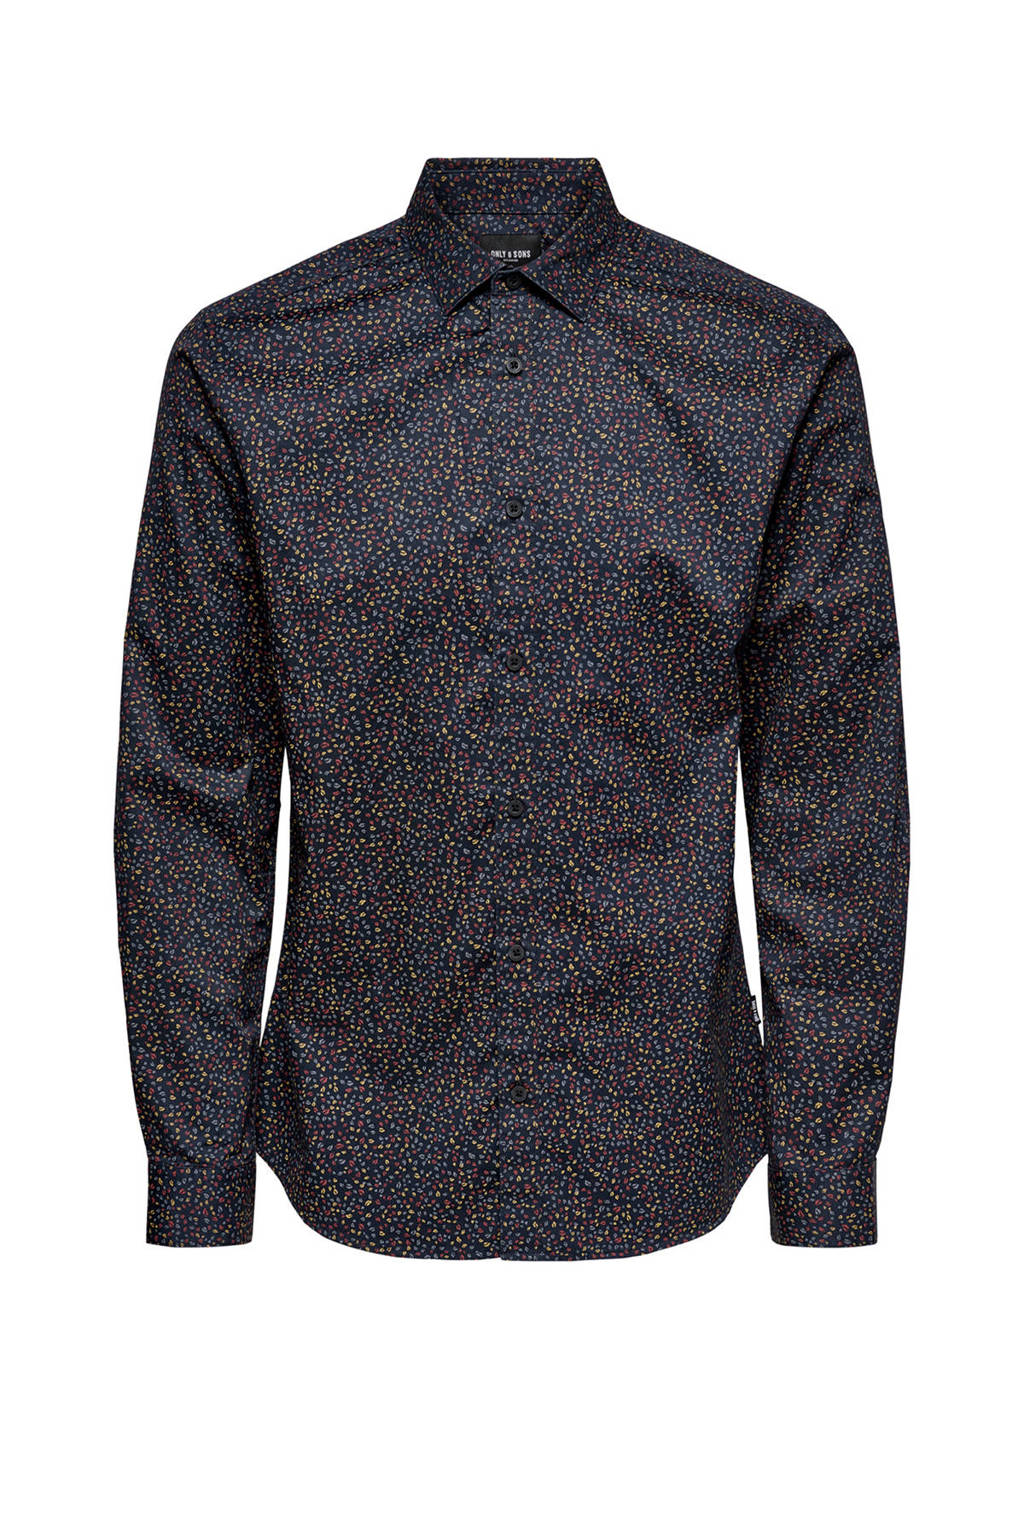 ONLY & SONS slim fit overhemd met all over print donkerblauw, Donkerblauw